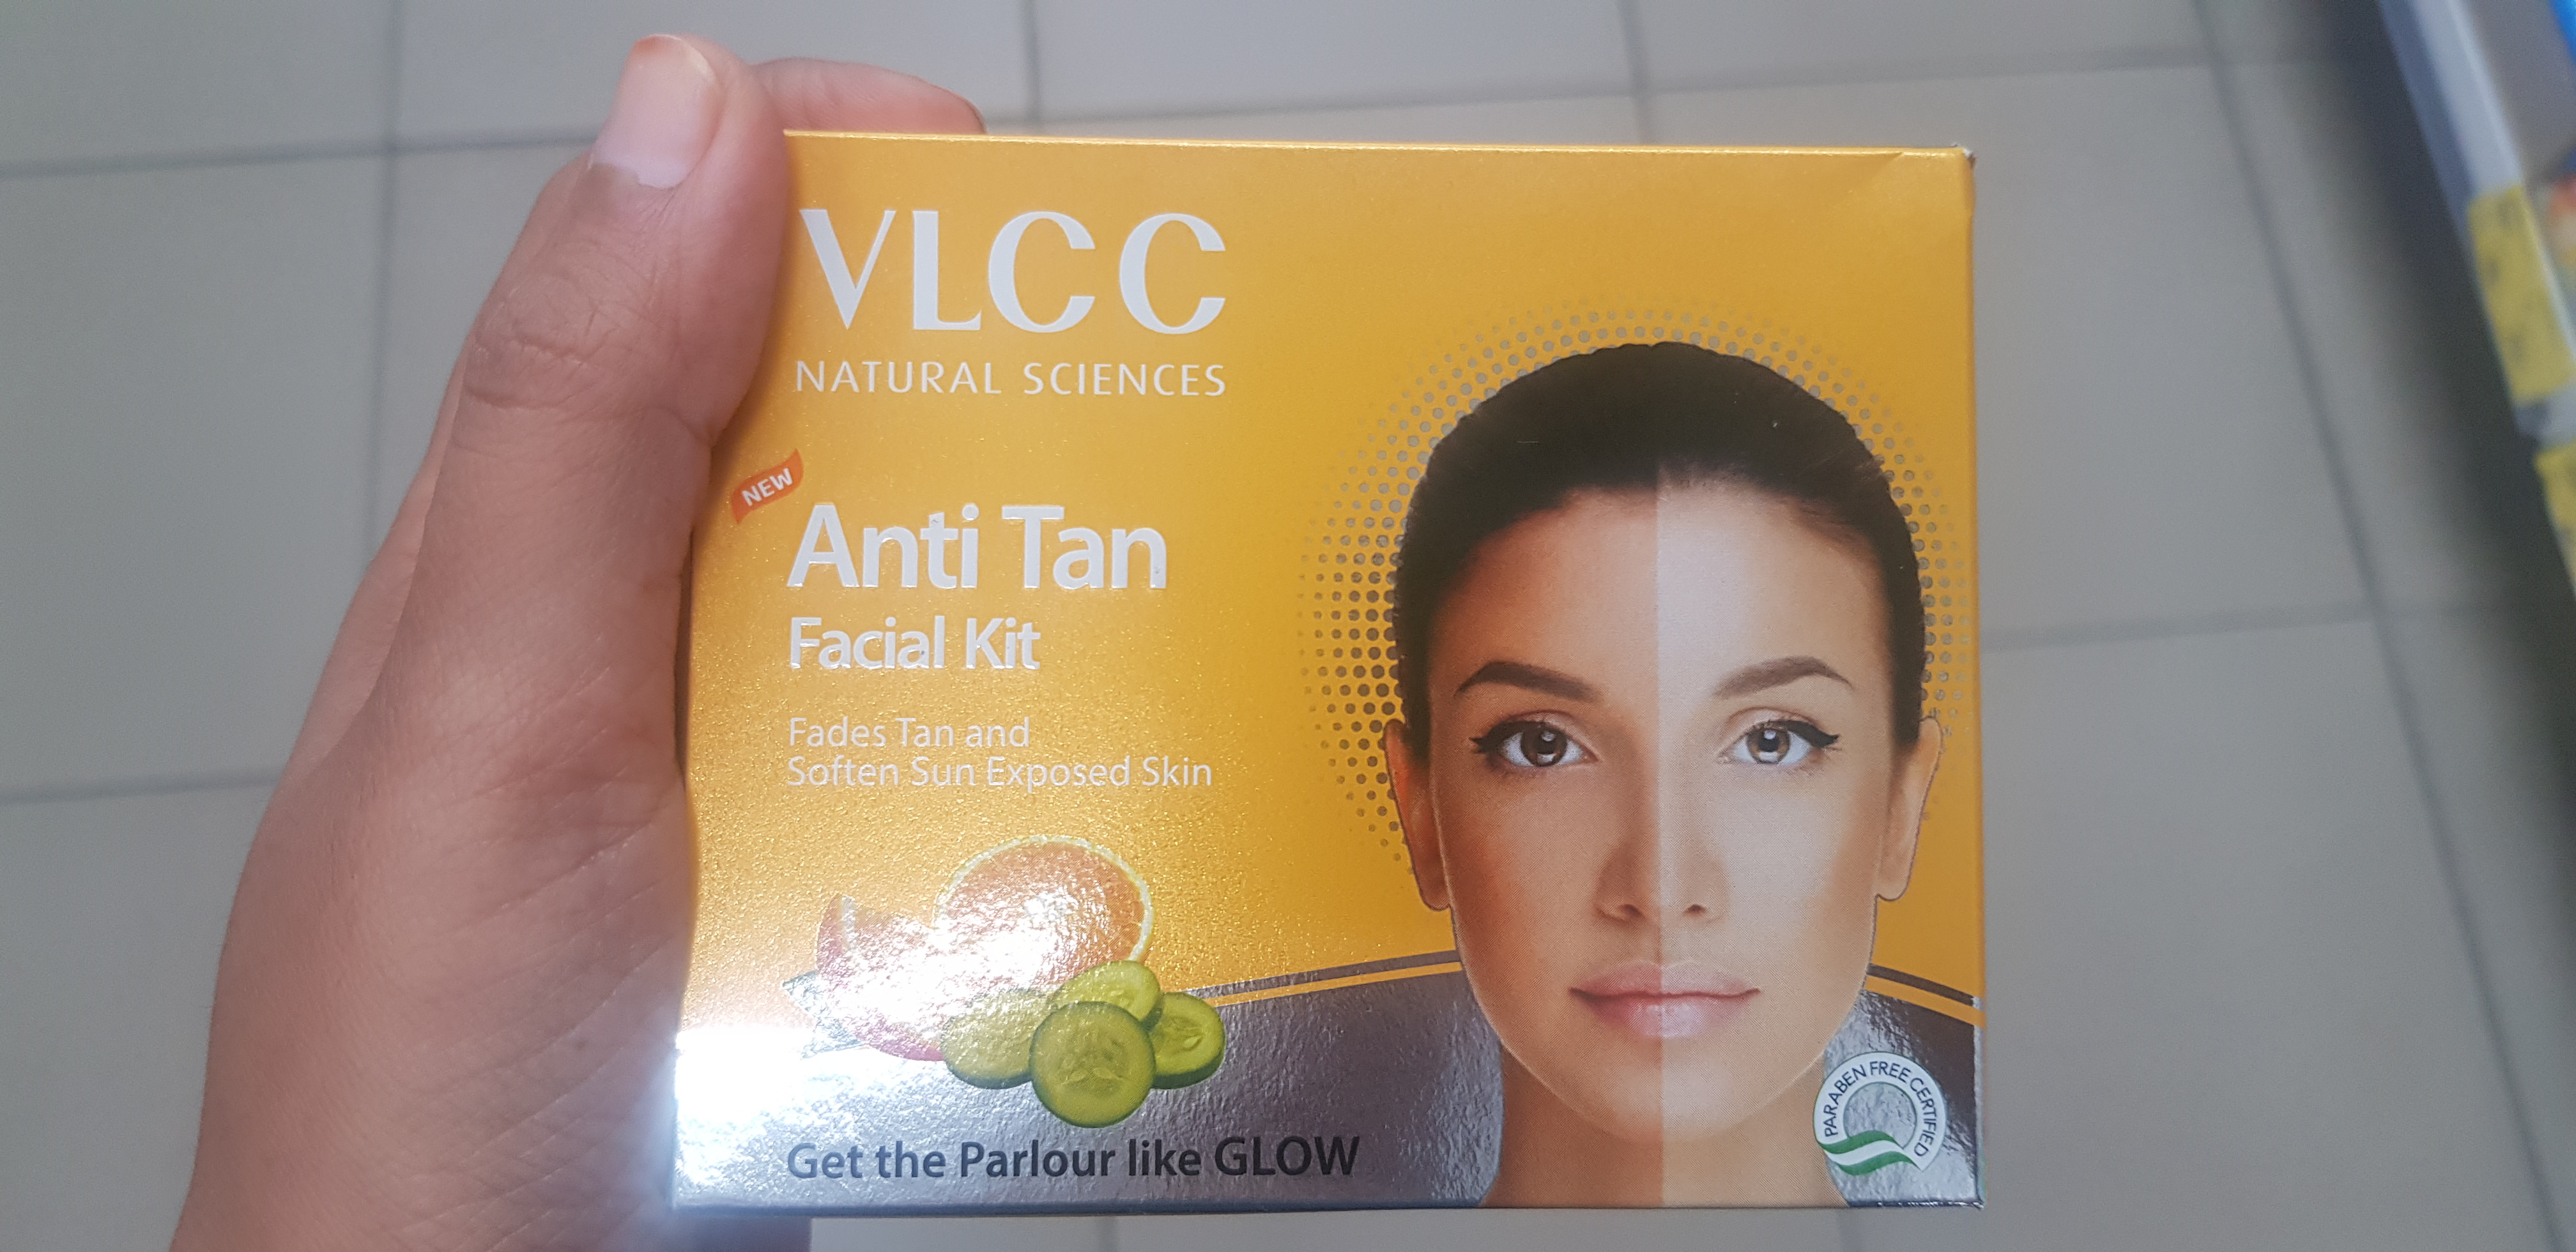 VLCC Anti Tan Facial Kit-Anti tan facial kit-By avyuktha